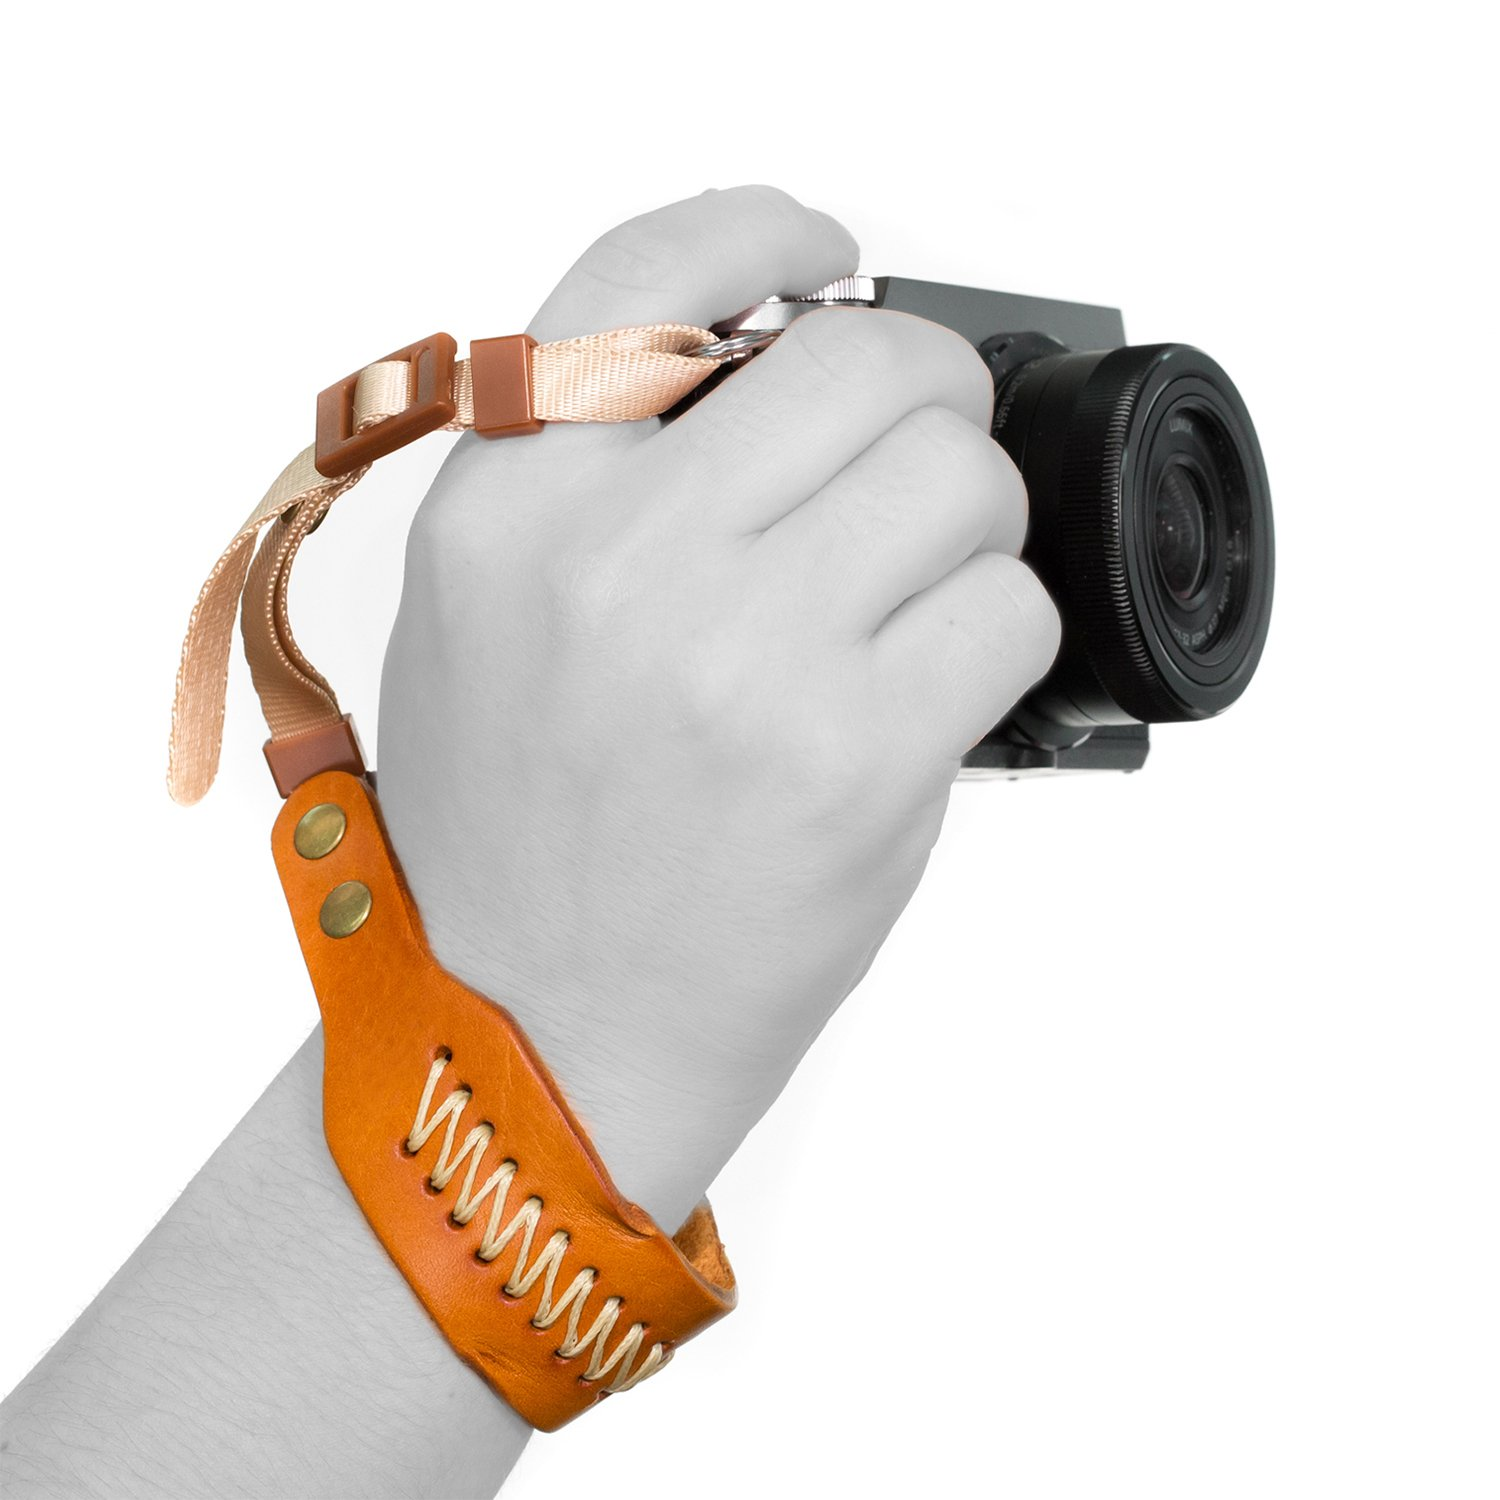 MegaGear MG928 Leather Wrist Strap Comfort Padding, Enhanced Hand Grip Stability and Security for All Cameras (SLR/DSLR) One Size Fits All, Dark Brown